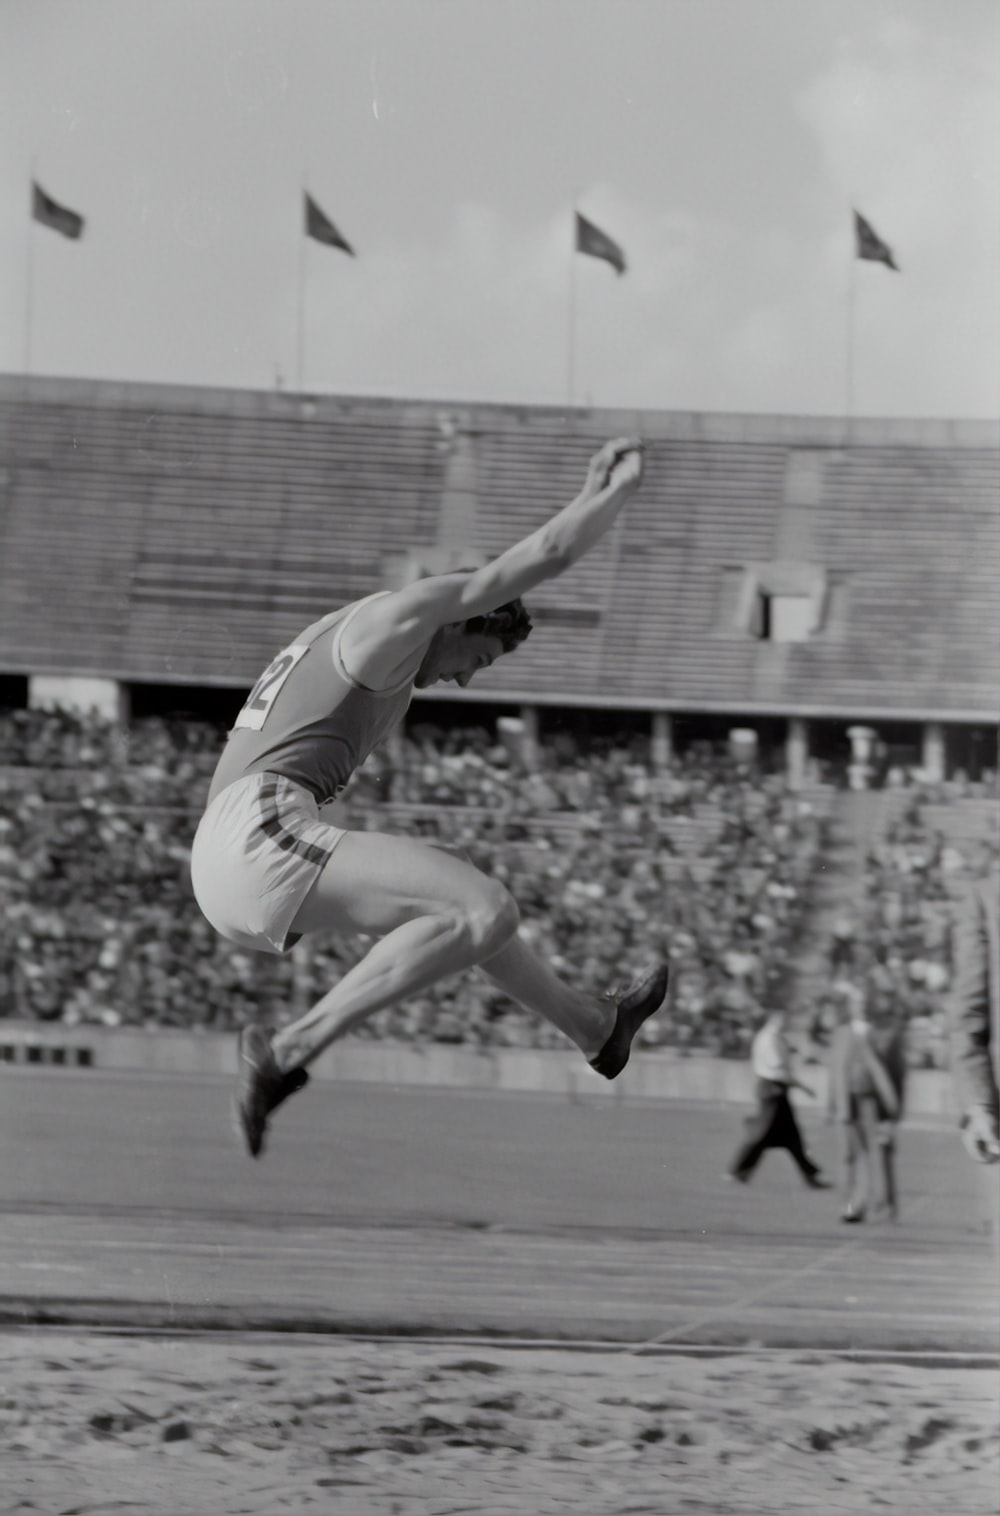 grayscale photography of man doing high jump surrounded with people watching